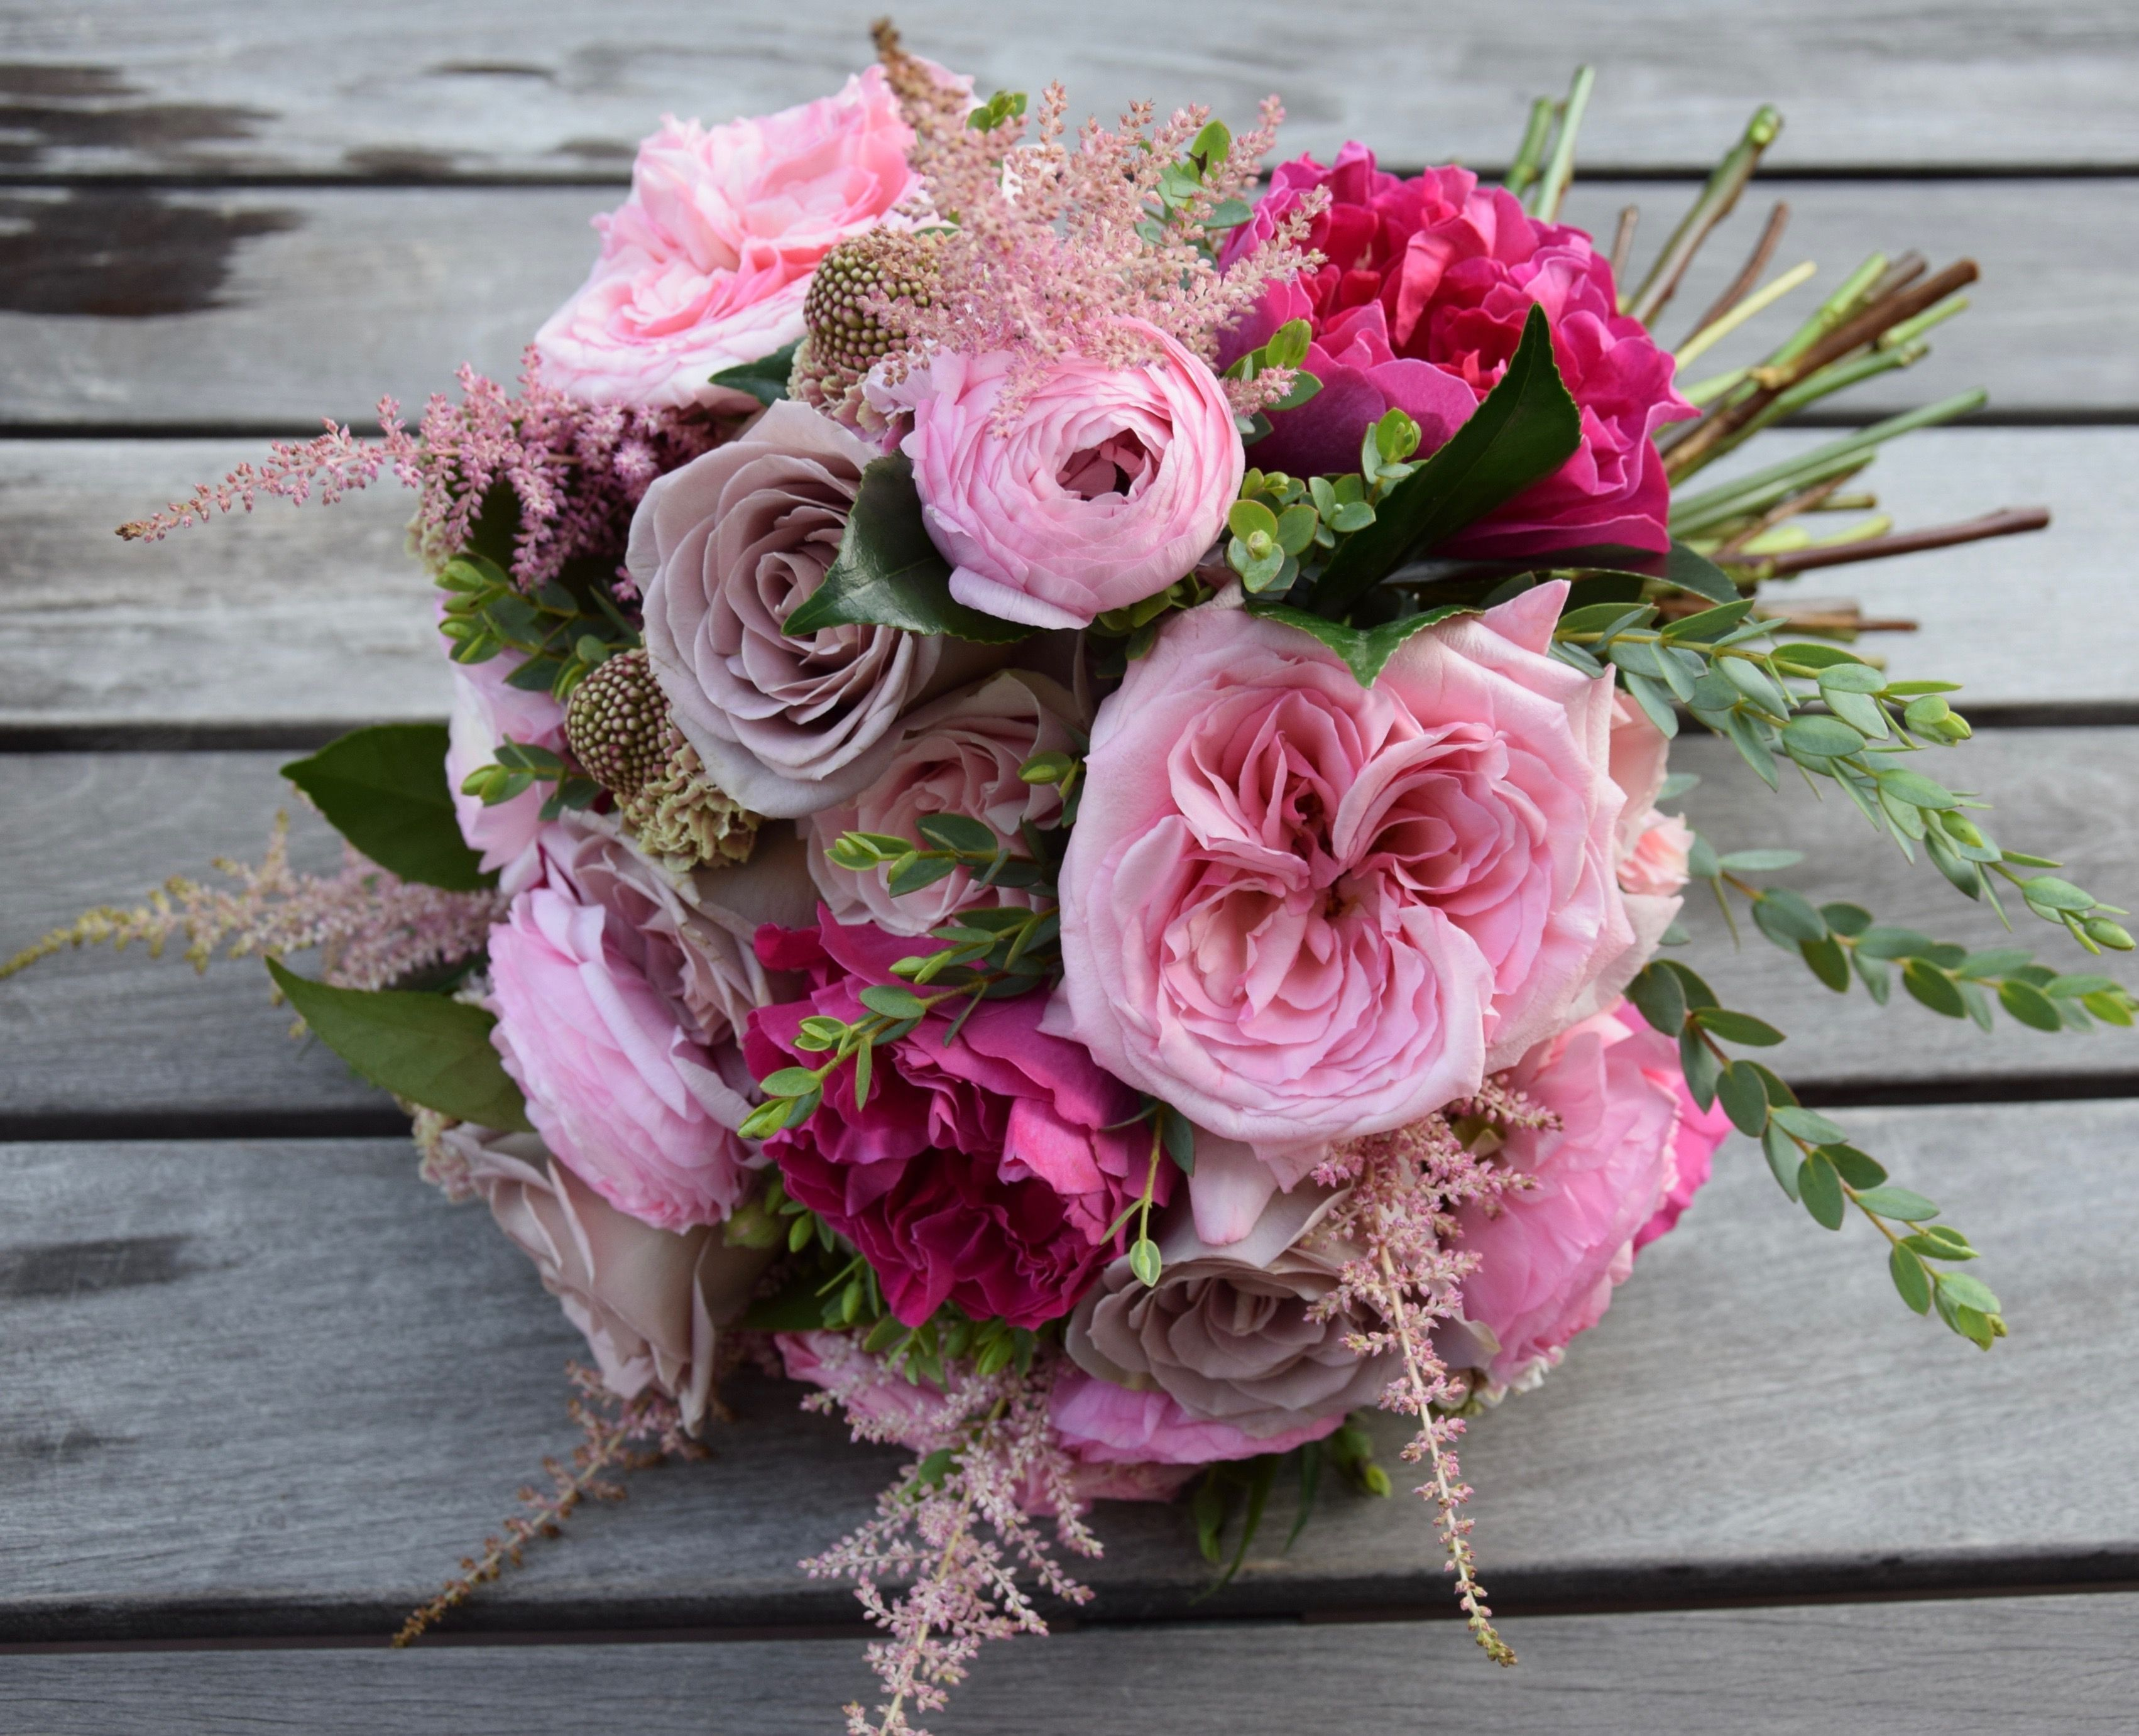 Bridal bouquet with hot pink and soft pink garden roses,  ranunculus, astilbe, amnesia and pink mondial premium roses, scabiosa and greens. #astilbebouquet Bridal bouquet with hot pink and soft pink garden roses,  ranunculus, astilbe, amnesia and pink mondial premium roses, scabiosa and greens. #astilbebouquet